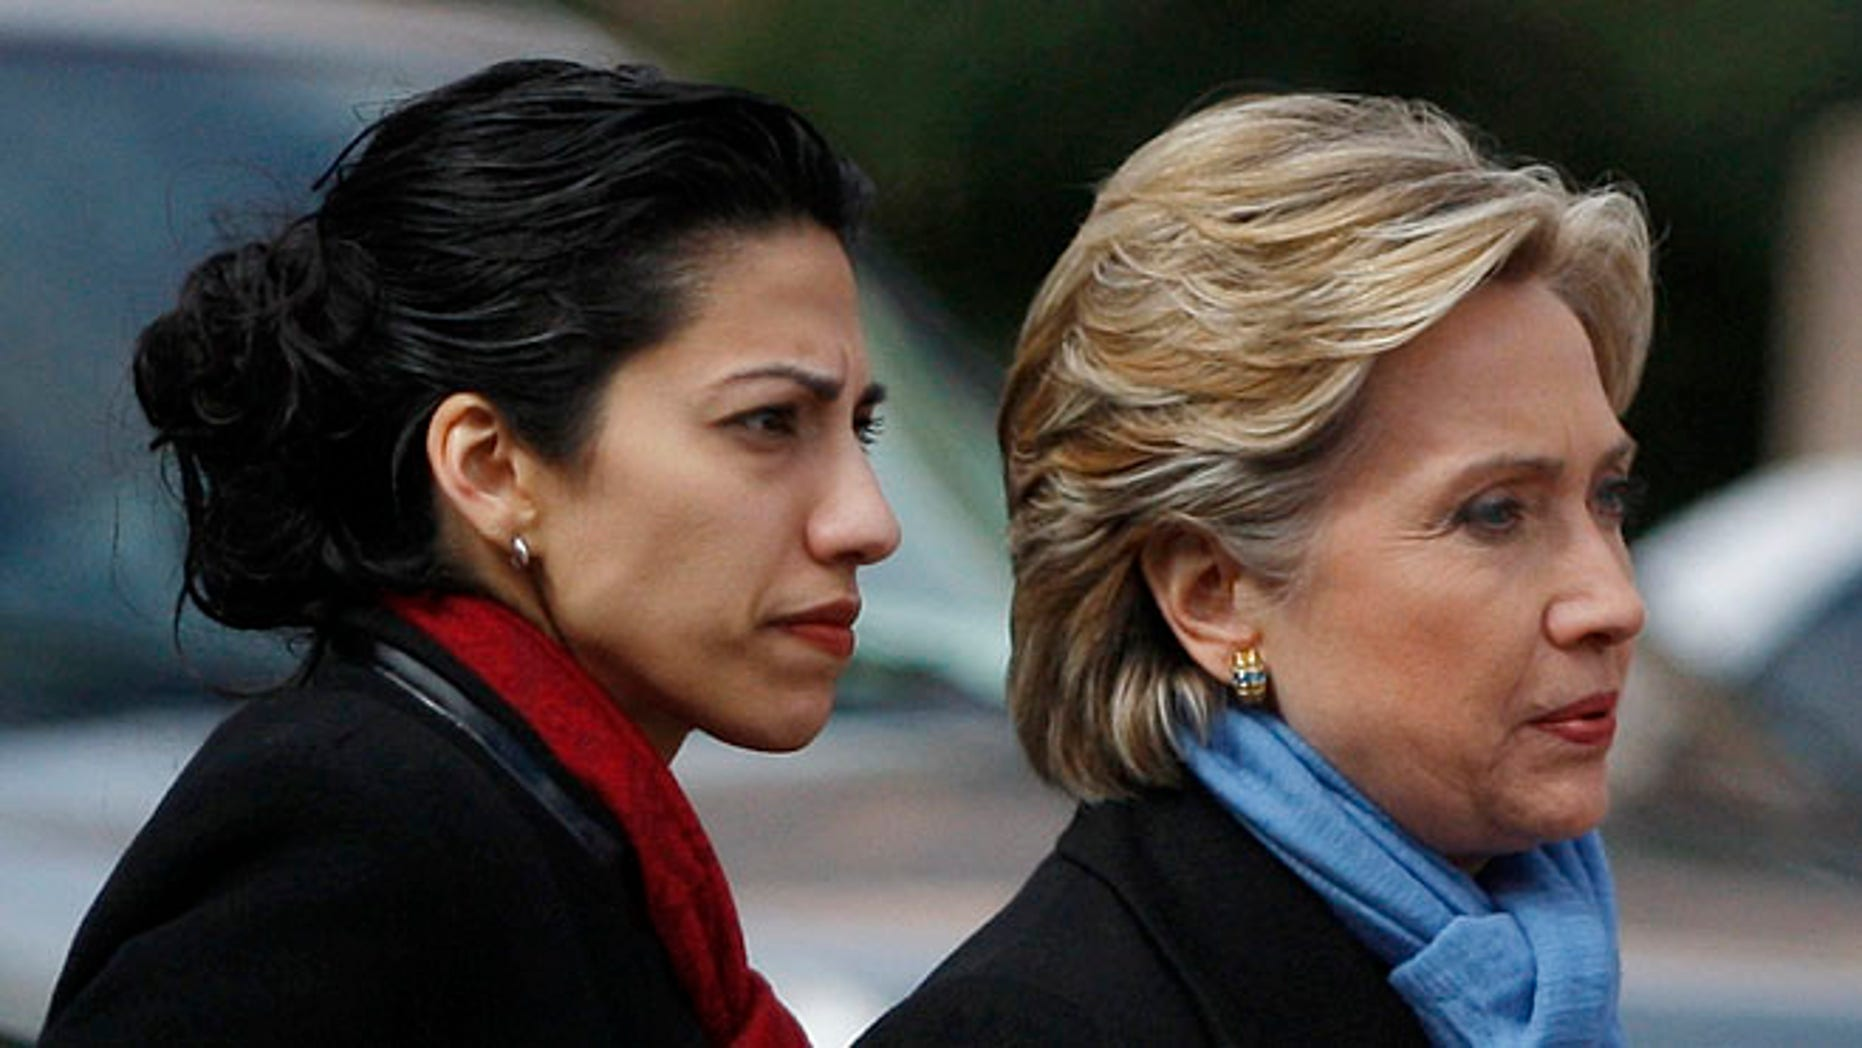 FILE: Feb. 22, 2008: Then-Sen. Hillary Clinton, D-N.Y., with chief of staff Huma Abedin in Fort Worth, Texas.